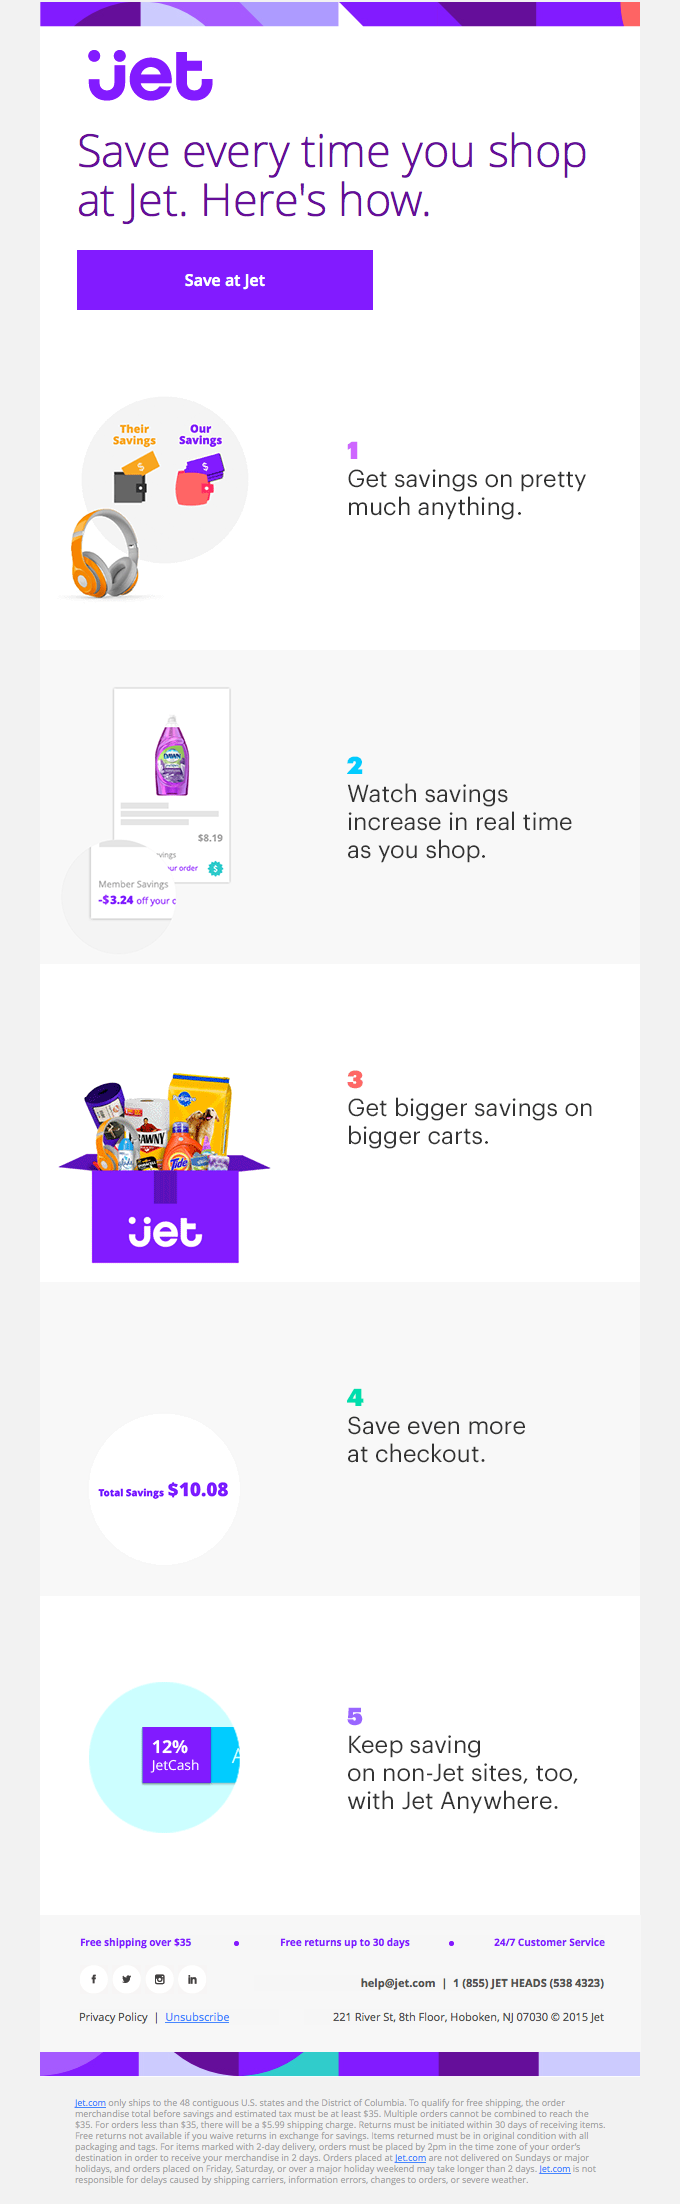 Master The Art Of Saving At Jet Really Good Emails Email Design Best Email